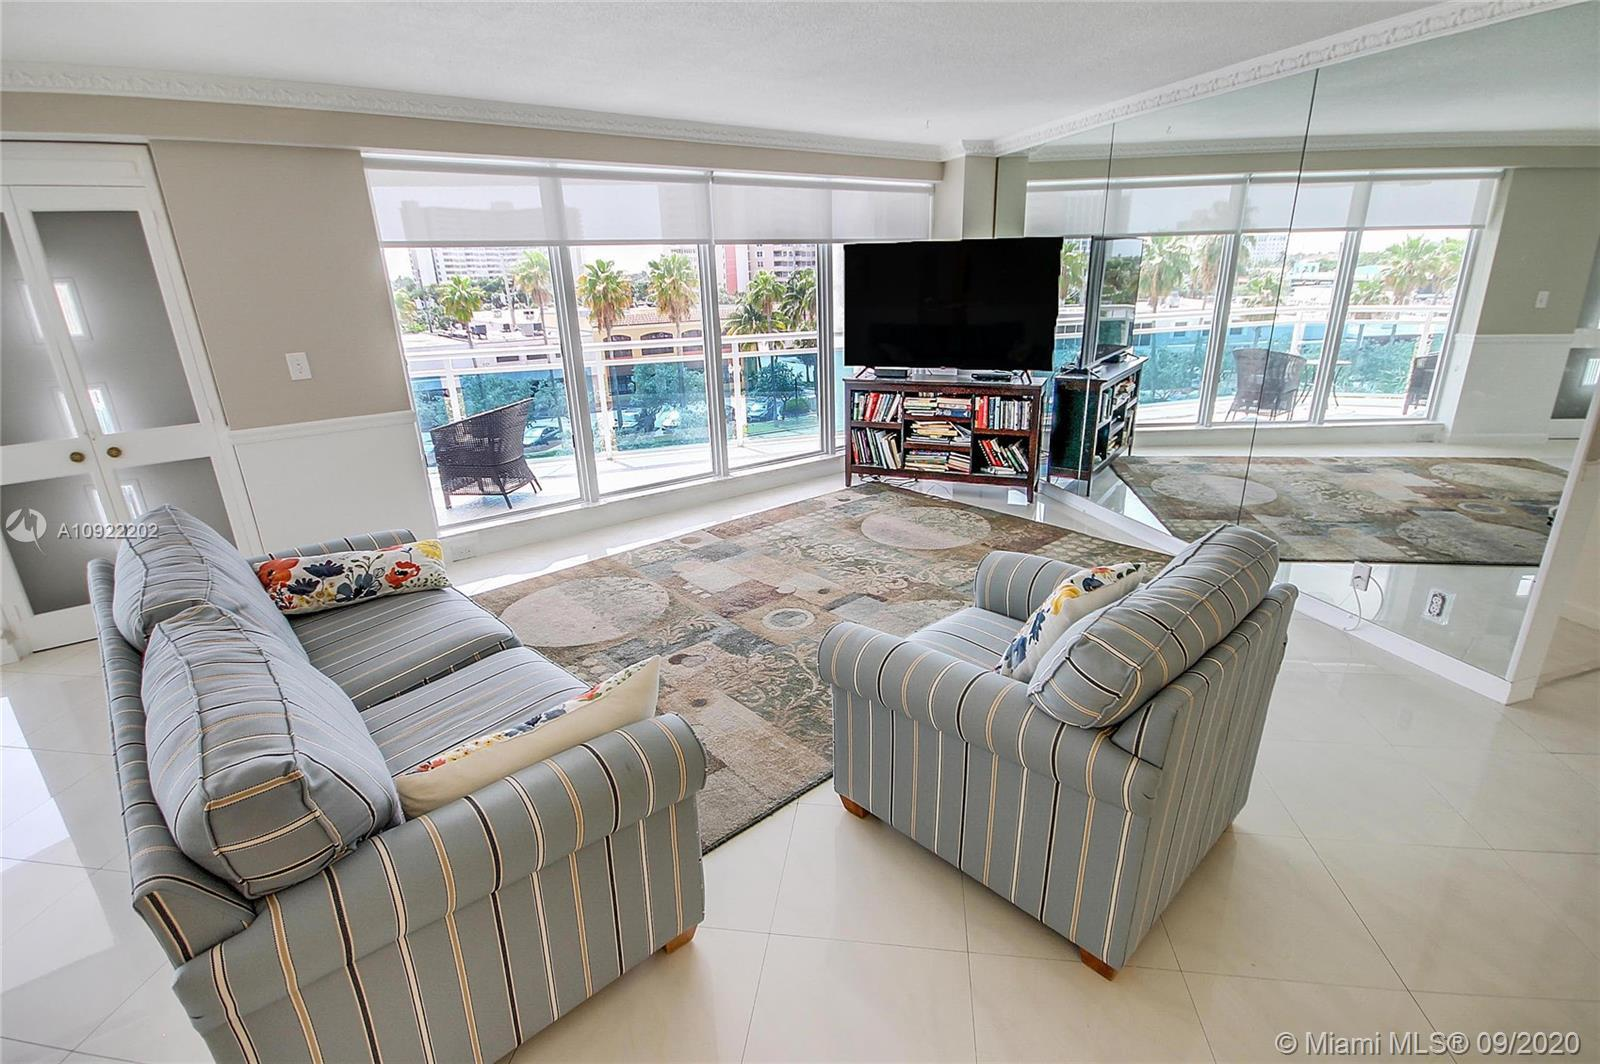 Exclusive waterfront condo at Galt Ocean Drive,!!! Under $400's !!! Amazing split layout with larges